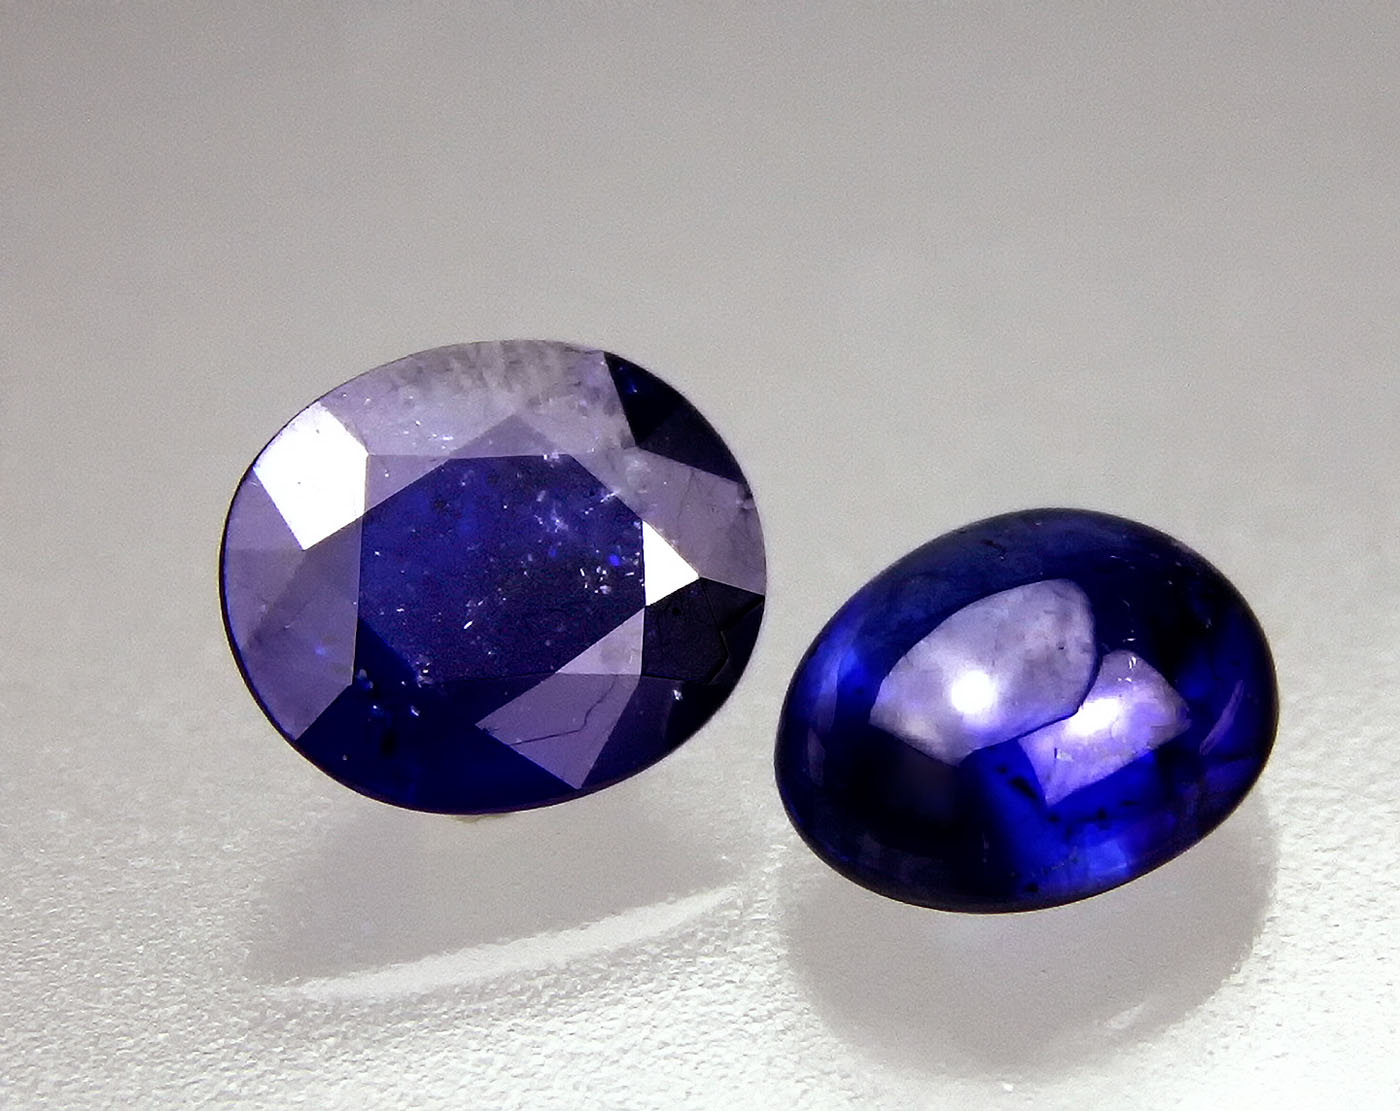 Figure 1. Two blue stones weighing 7.57 ct (left) and 6.62 ct (right) submitted to GIT for testing in May 2012. (Photo: Warinthip Krajae-Jan).